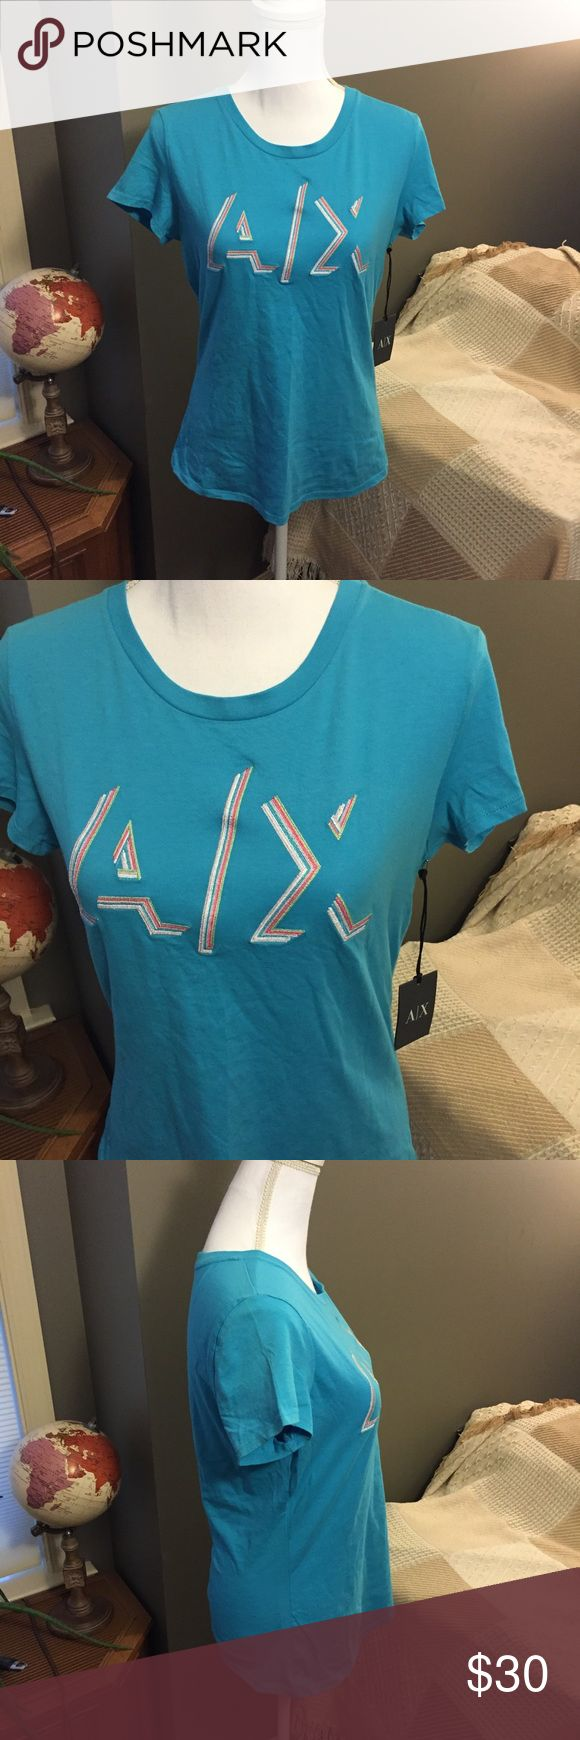 🆕 Armani Exchange Blue T-Shirt NWT Large ☀️ Brand new with tags! Thank you for looking! A/X Armani Exchange Tops Tees - Short Sleeve